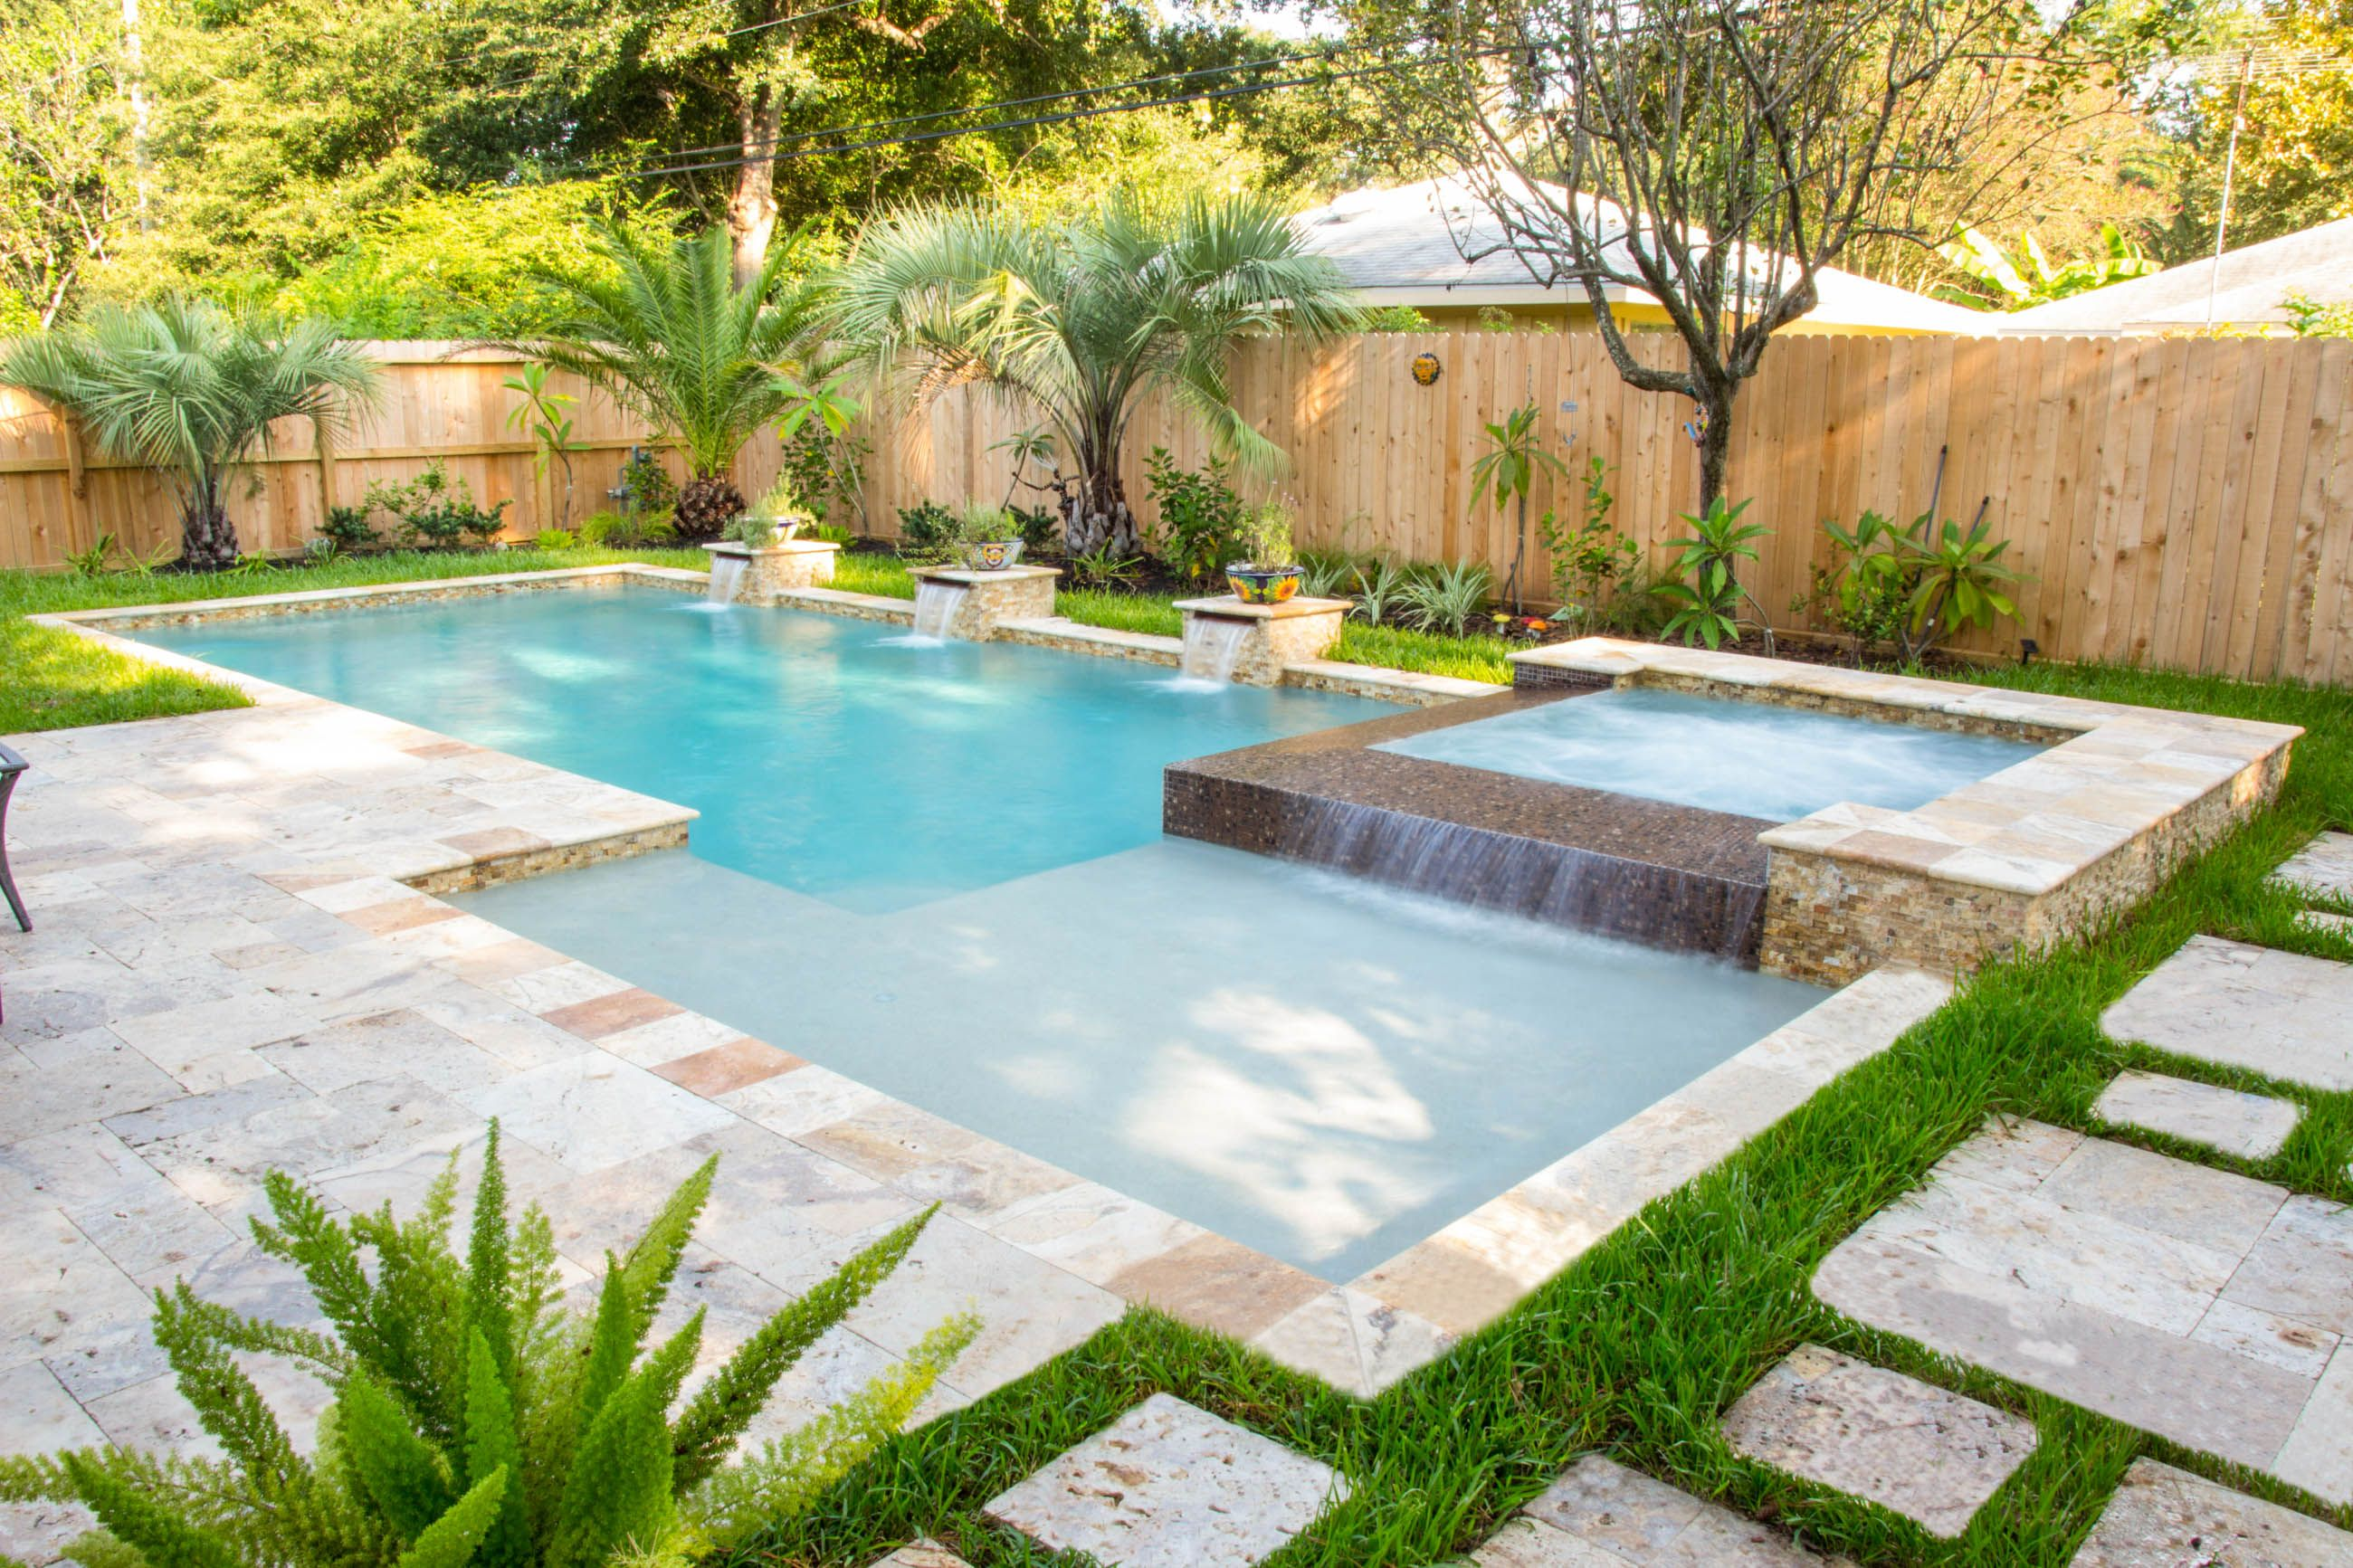 Custom Pools Priced Between $50-$60k in 2019 | Pools | Pool prices ...